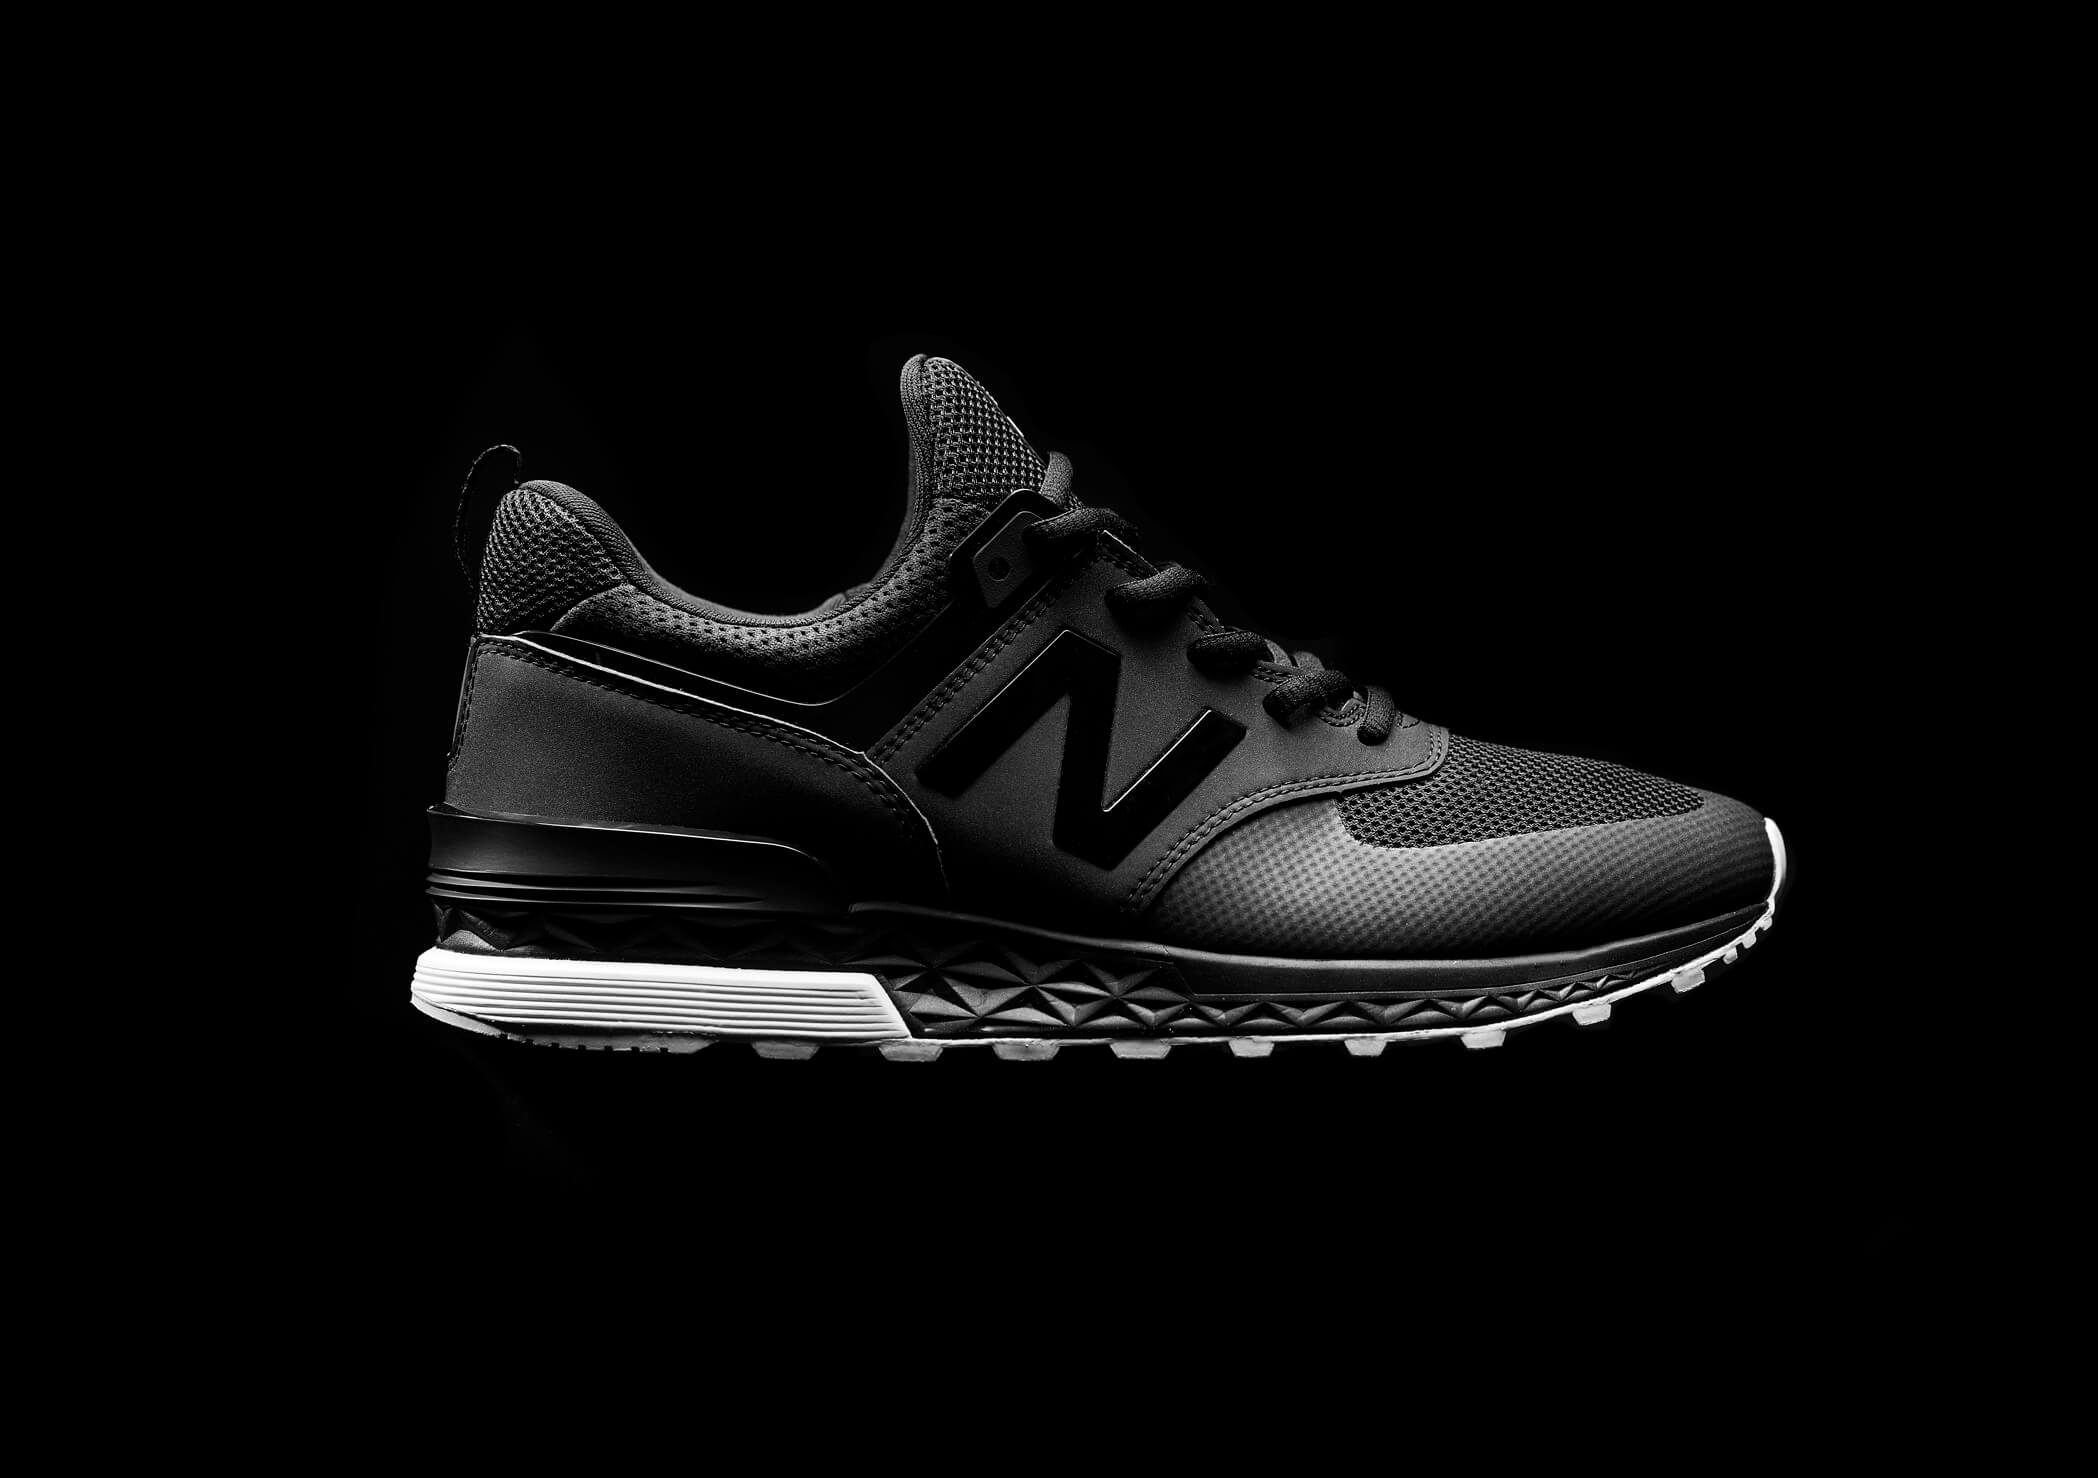 Creme_creative_NewBalance_Test_Shoot_02.jpg